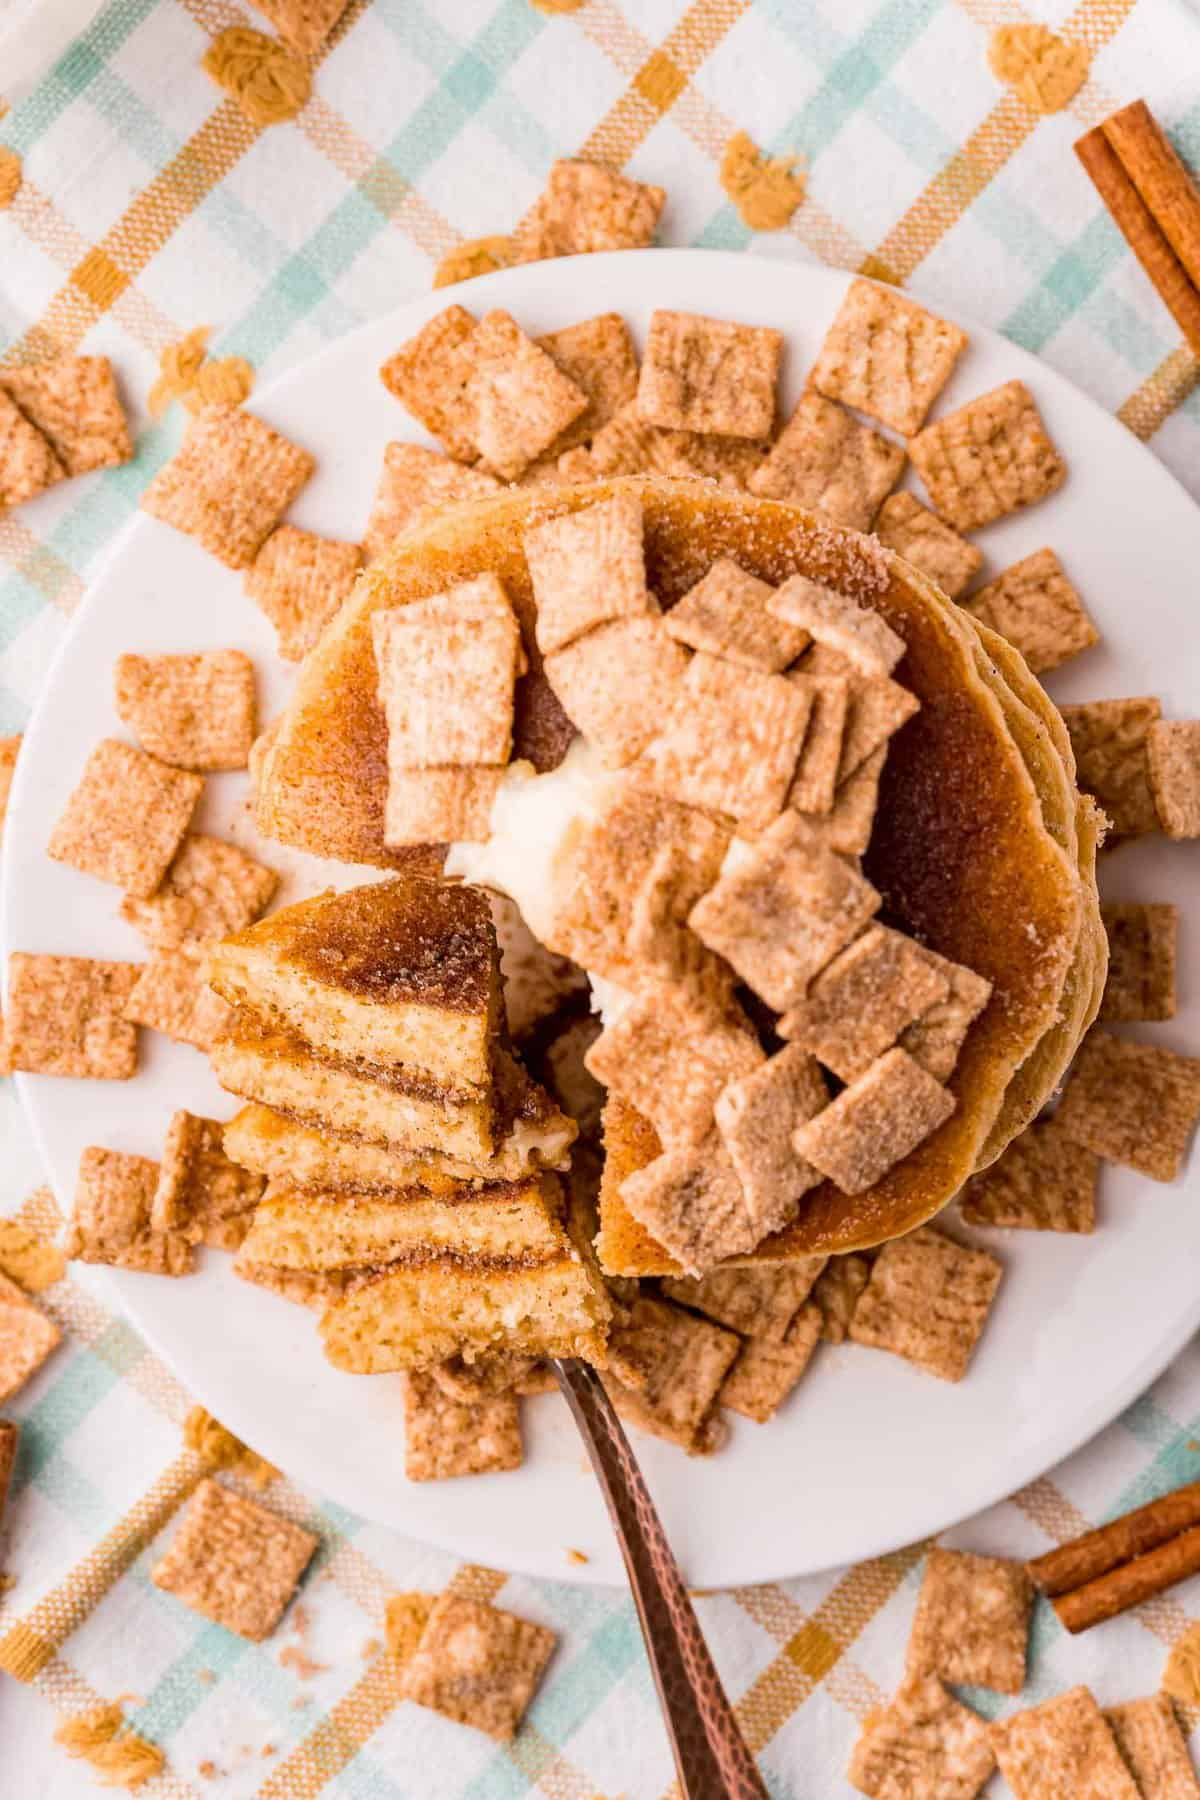 Overhead view of pancakes topped with cinnamon toast crunch cereal.